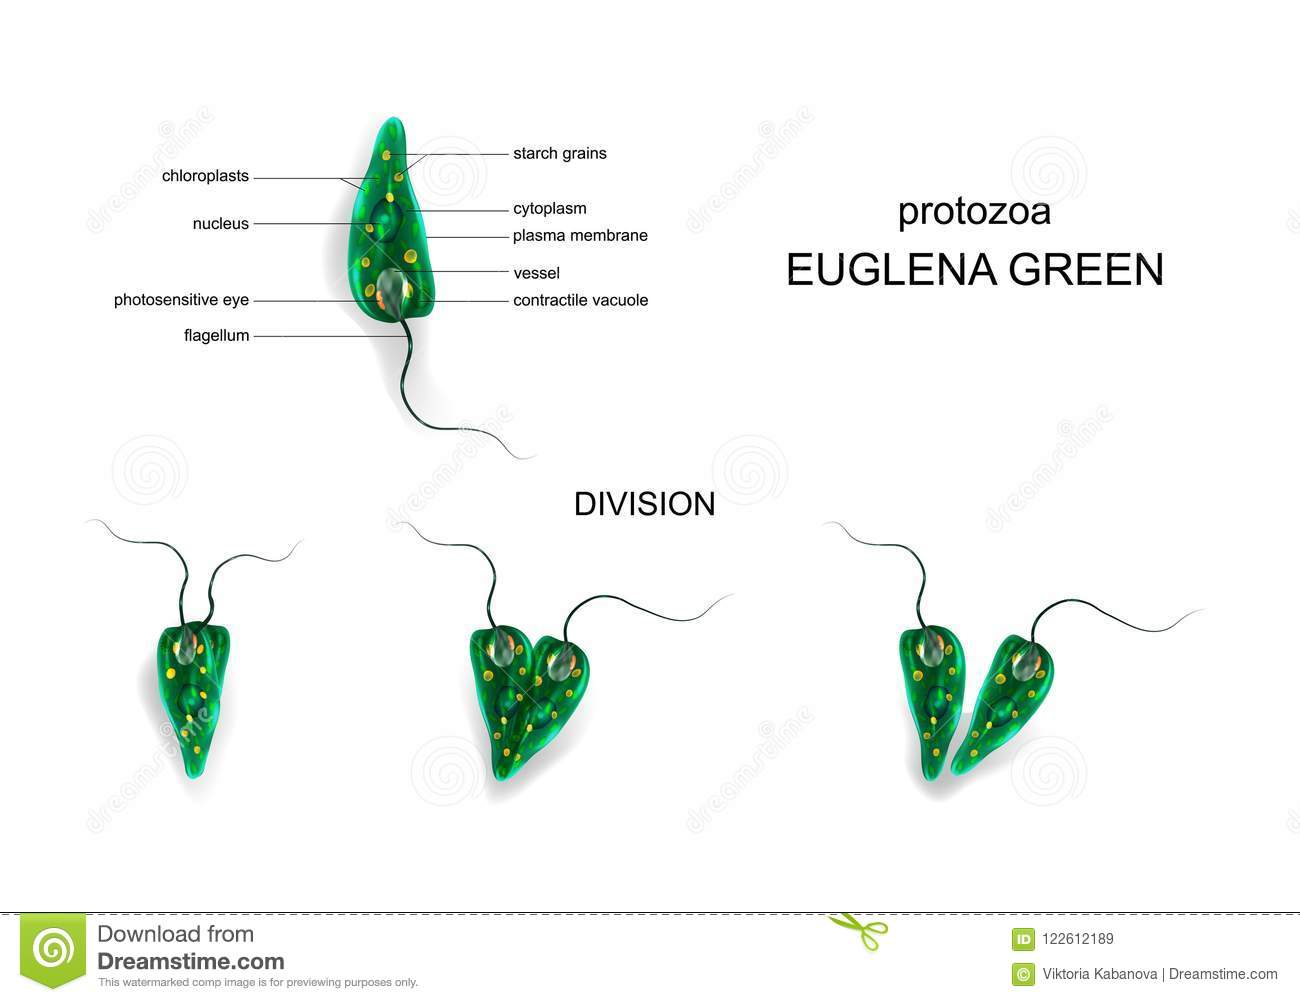 euglena diagram blank vaillant ecotec plus 418 wiring cartoons illustrations vector stock images 50 pictures to download from cartoondealer com